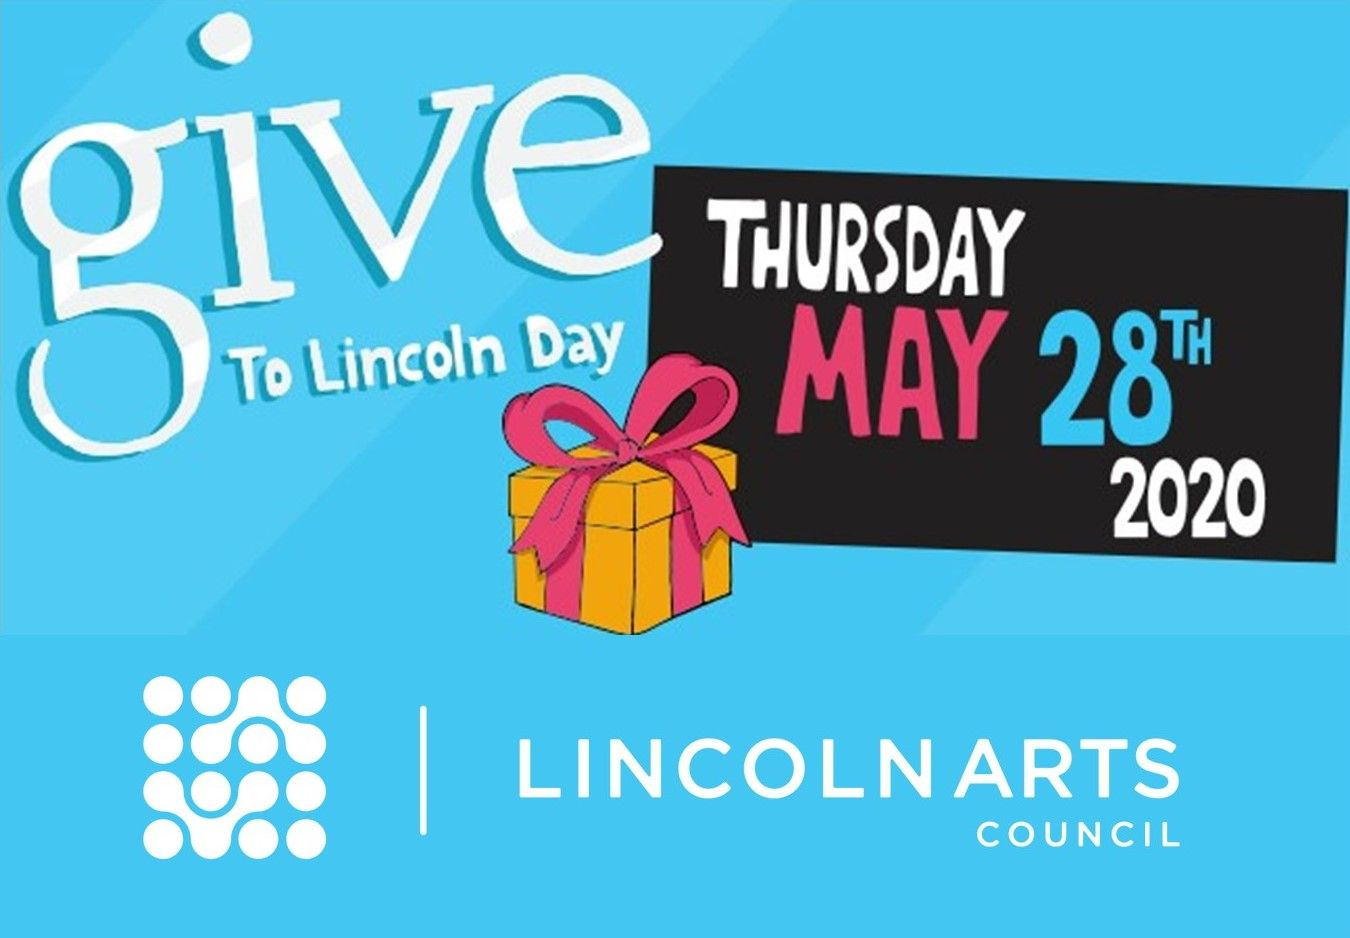 May 28th is Give to Lincoln Day!